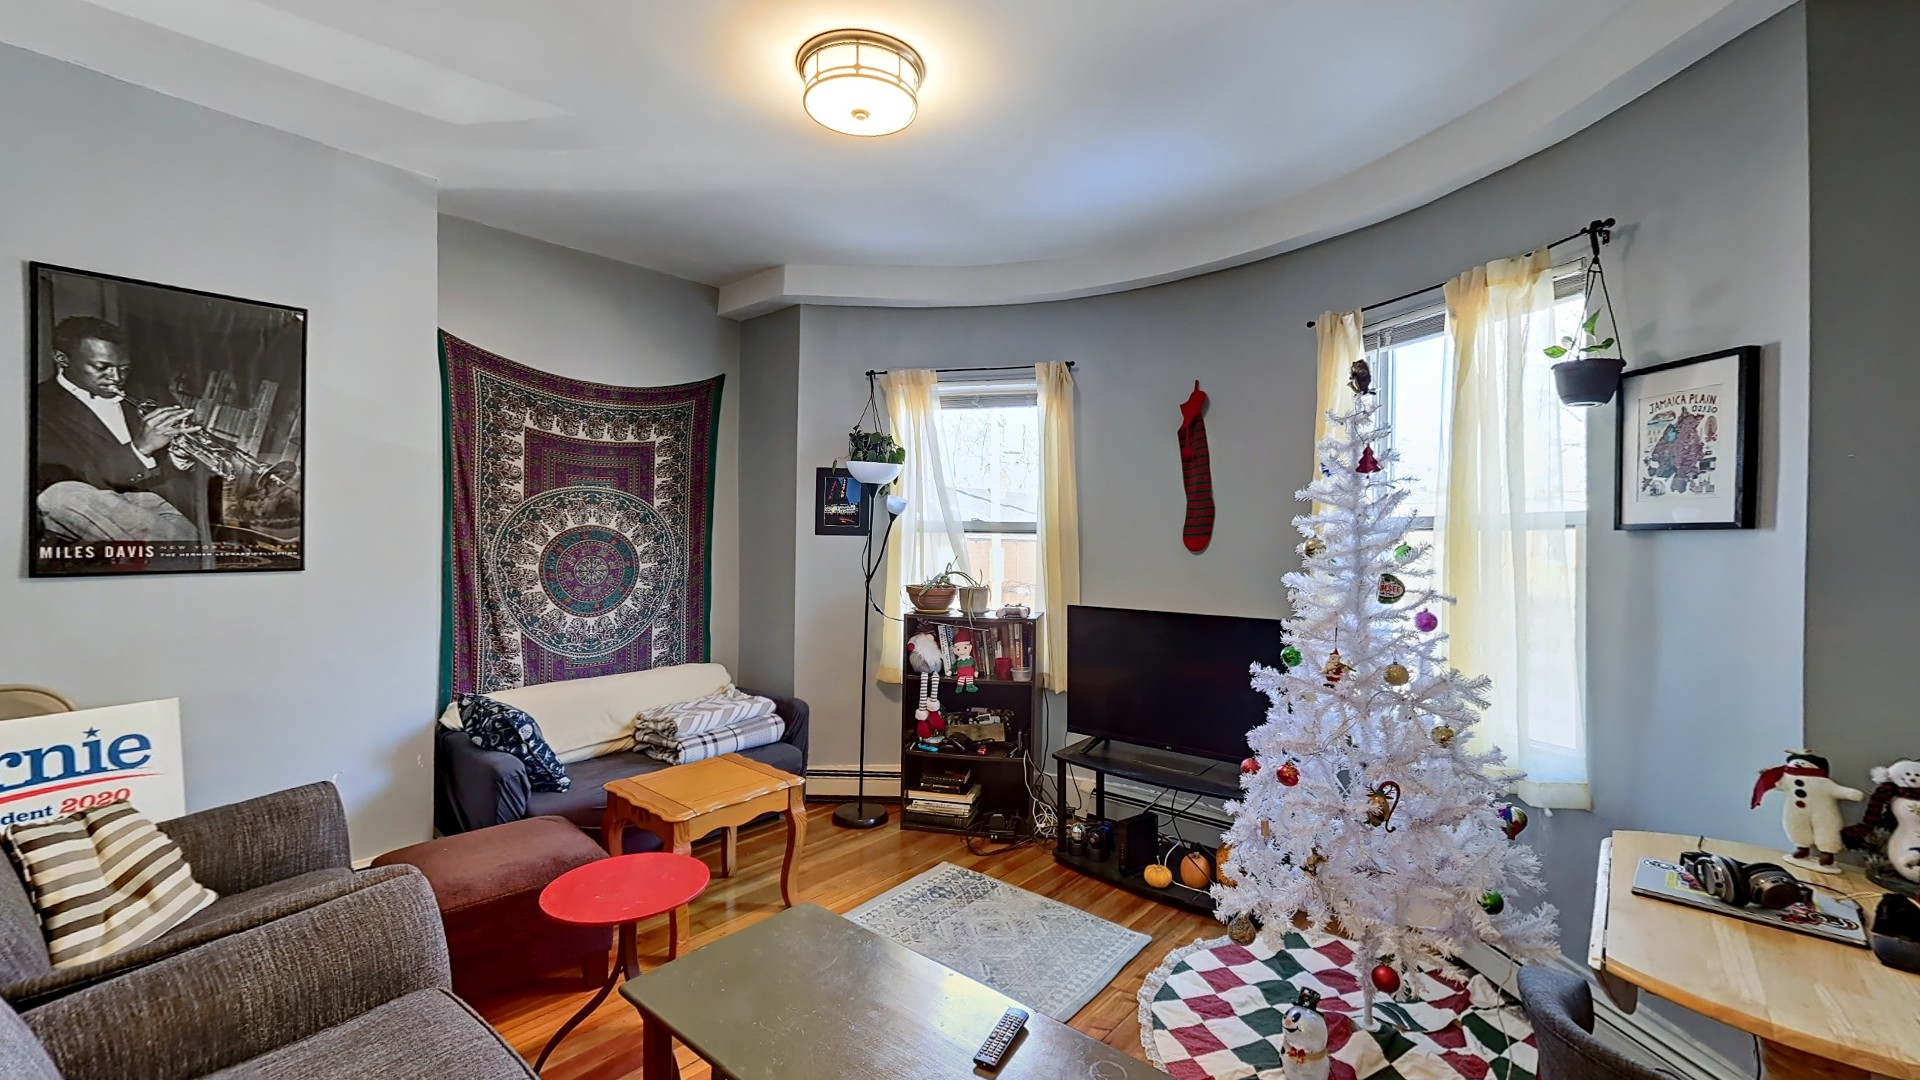 3 Beds, 1 Bath apartment in Boston, Jamaica Plain for $2,550